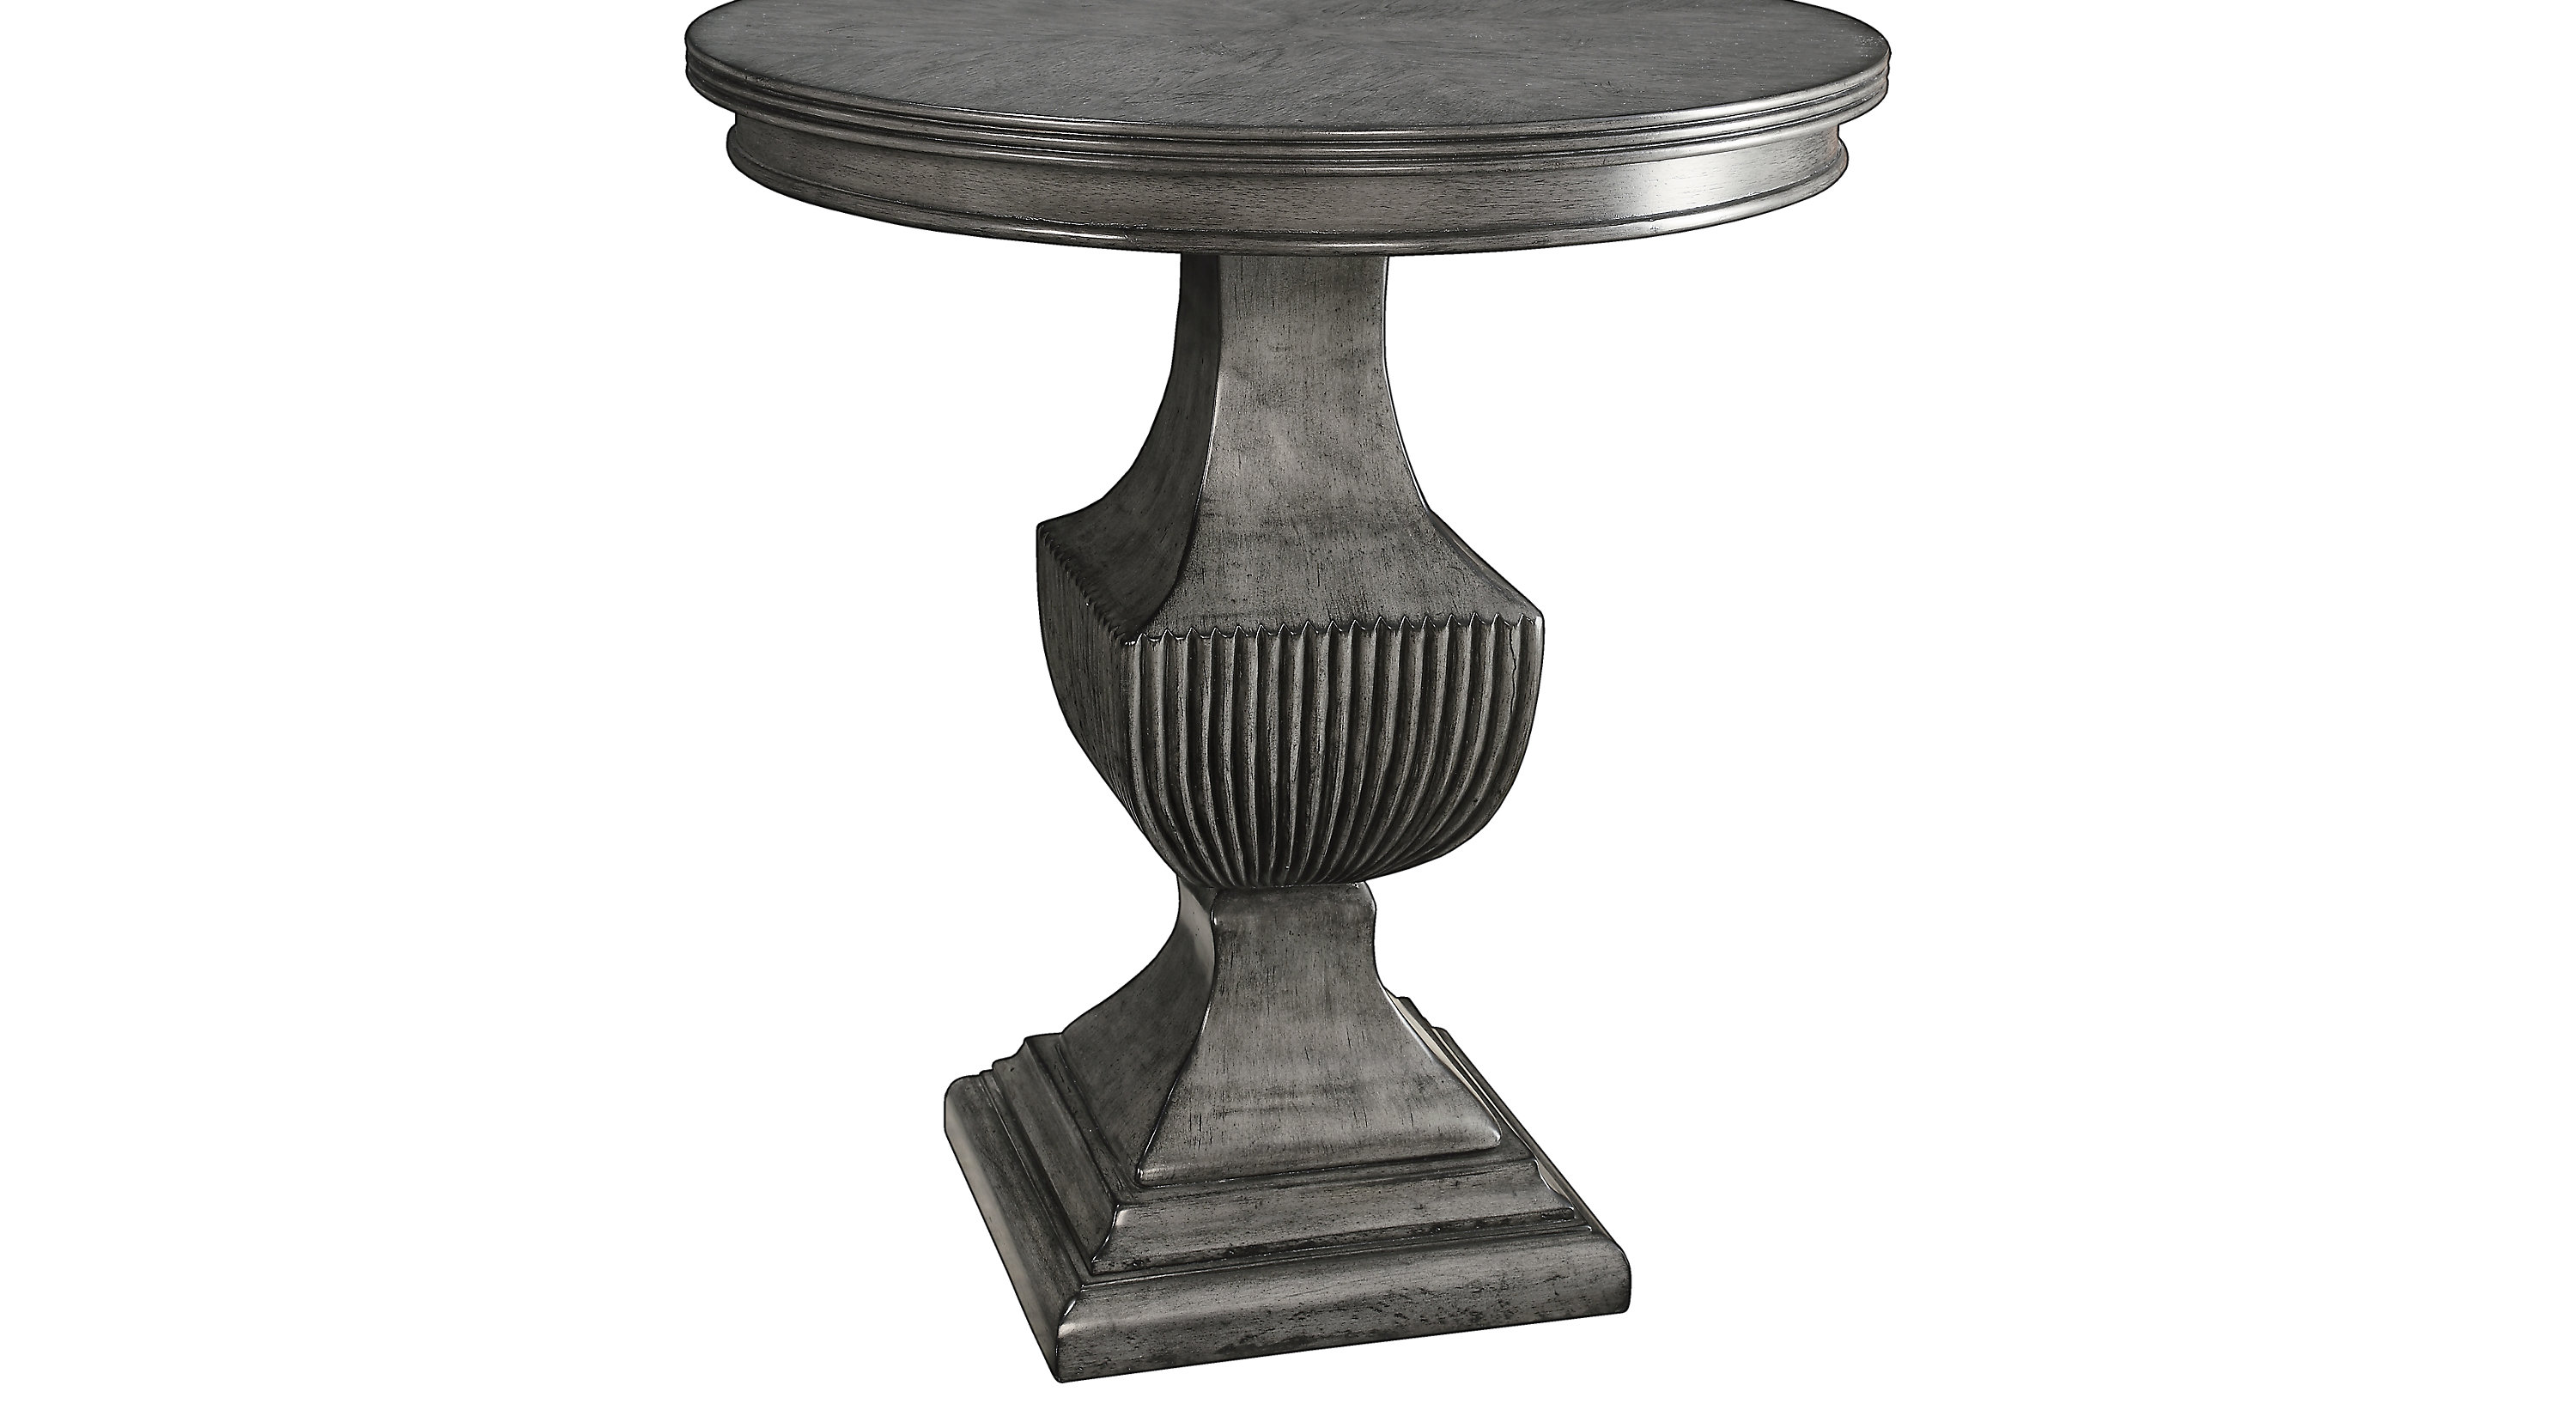 kearsley gray accent table traditional grey furniture legs gold lamp shades for lamps medium oak end tables marble top cocktail wooden centre designs with glass round folding side